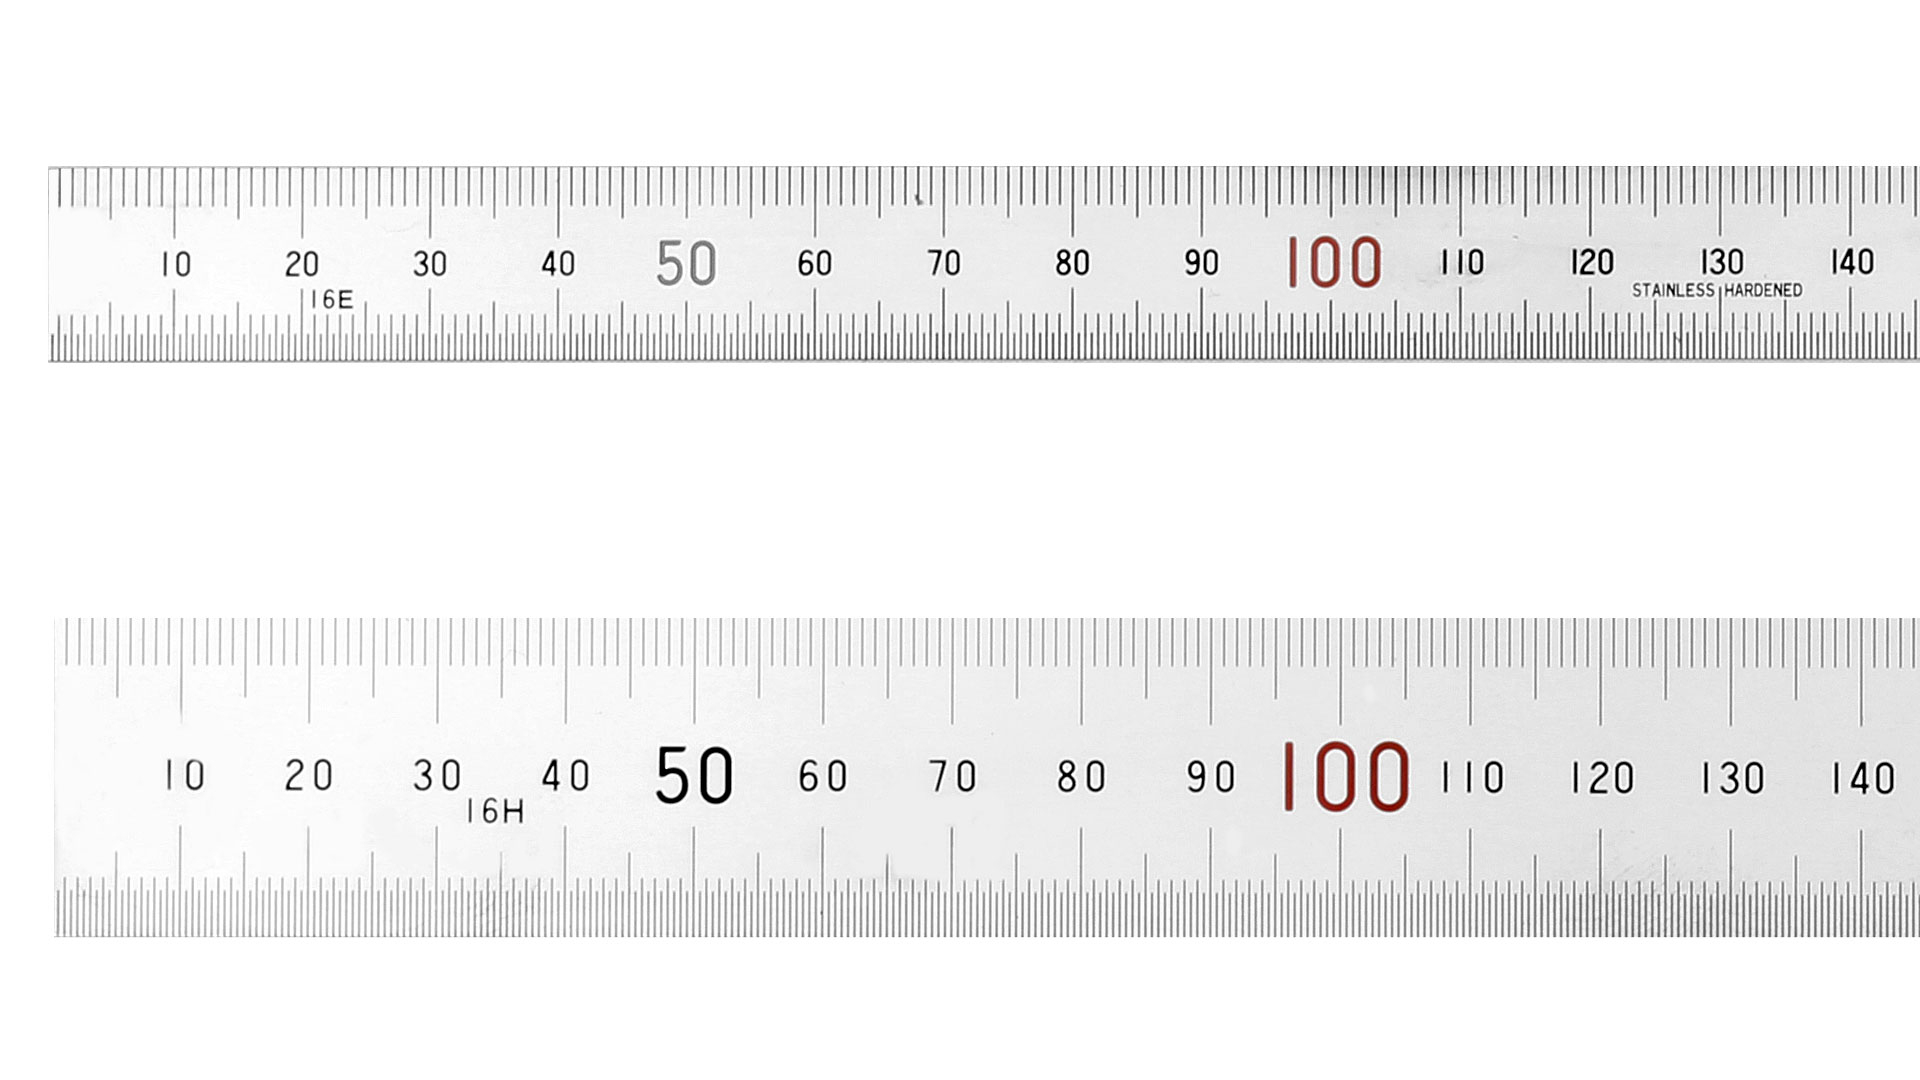 How To's Wiki 88: How To Read A Ruler In Millimeters